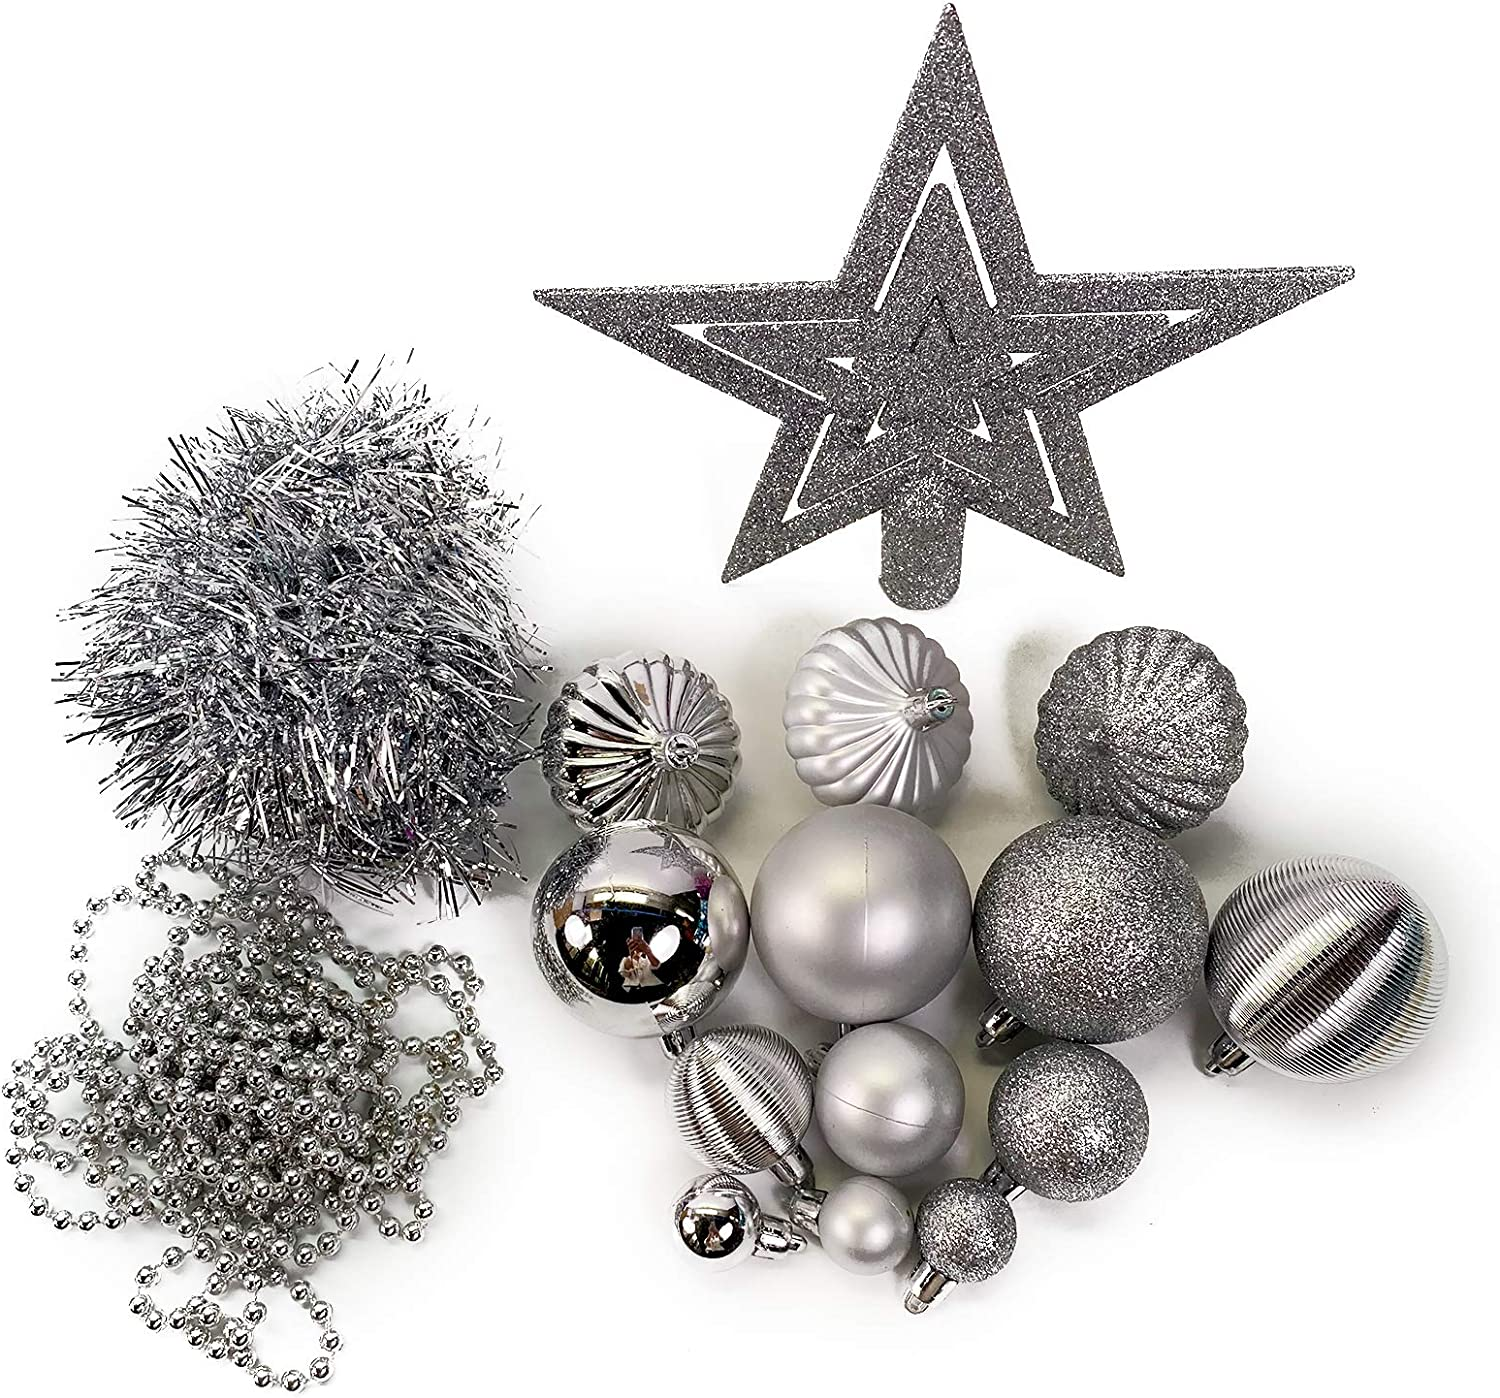 No One/&U 2020 New Christmas Ball Ornaments,Shatterproof Christmas Tree Decorations Hanging Ball for Holiday Wedding Party-2.36inchx24 Pack